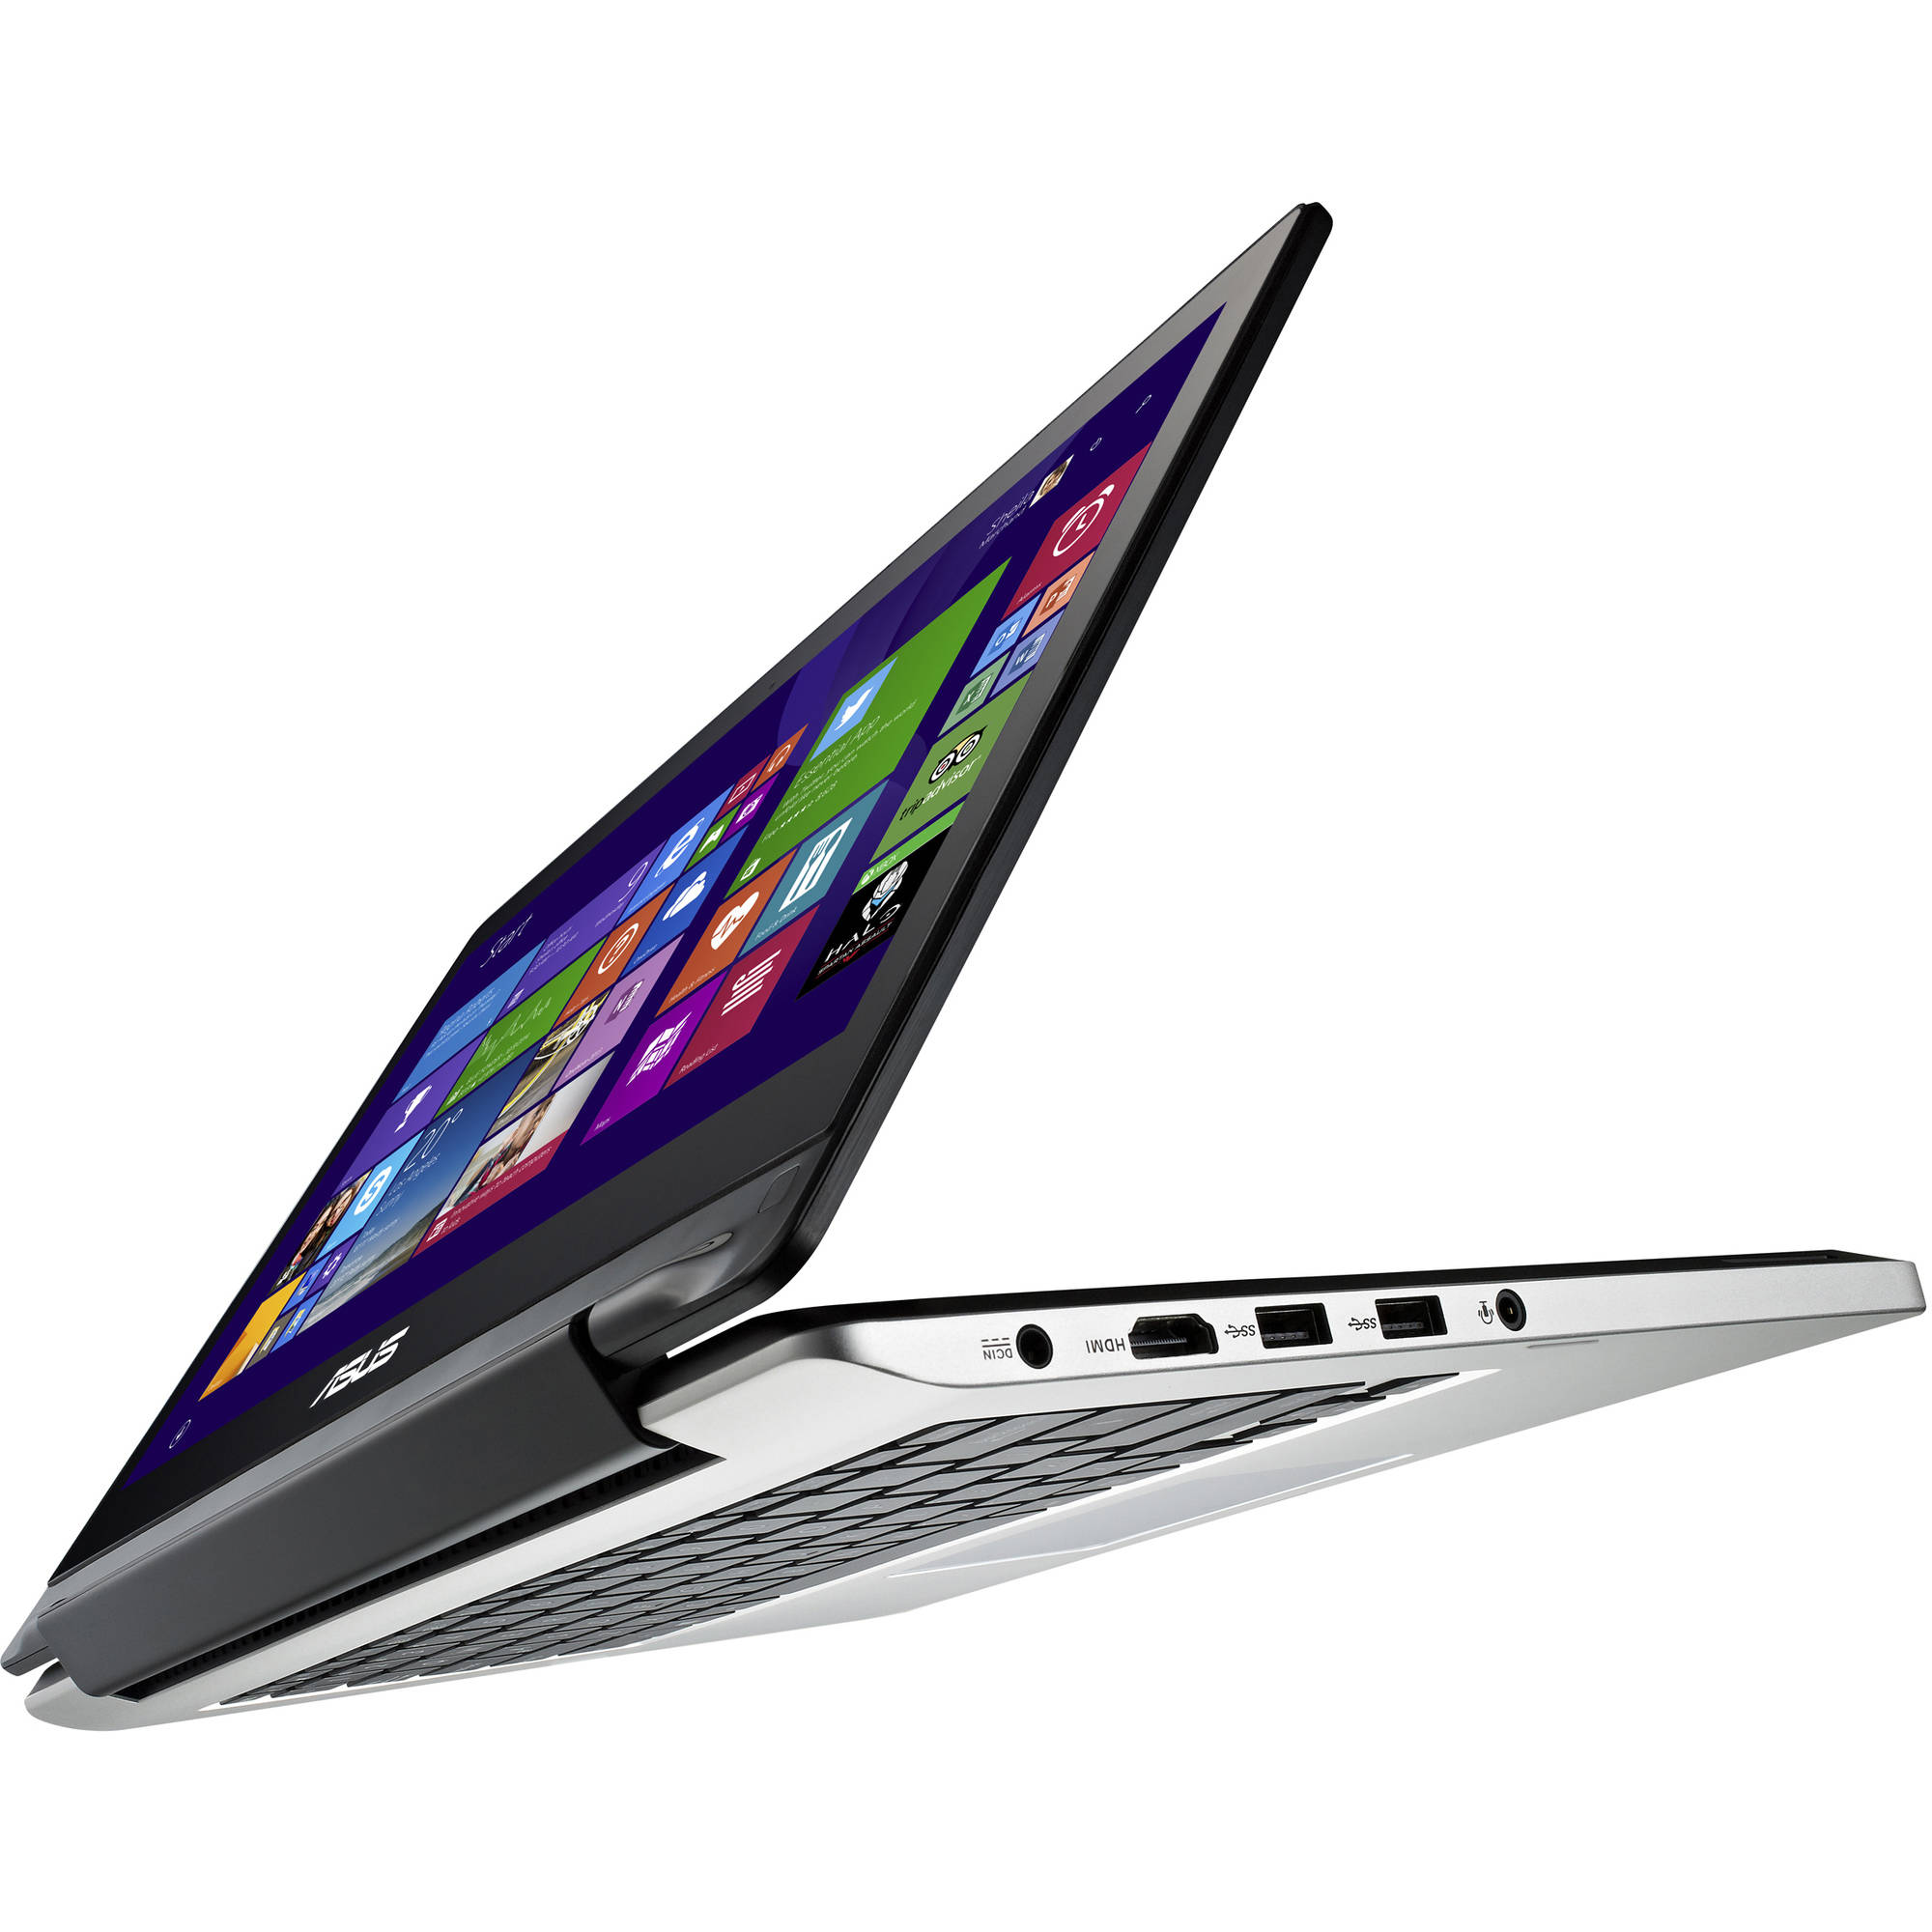 Asus Transformer Book Flip – Intel Core i5 – 1.70GHz, 6GB...